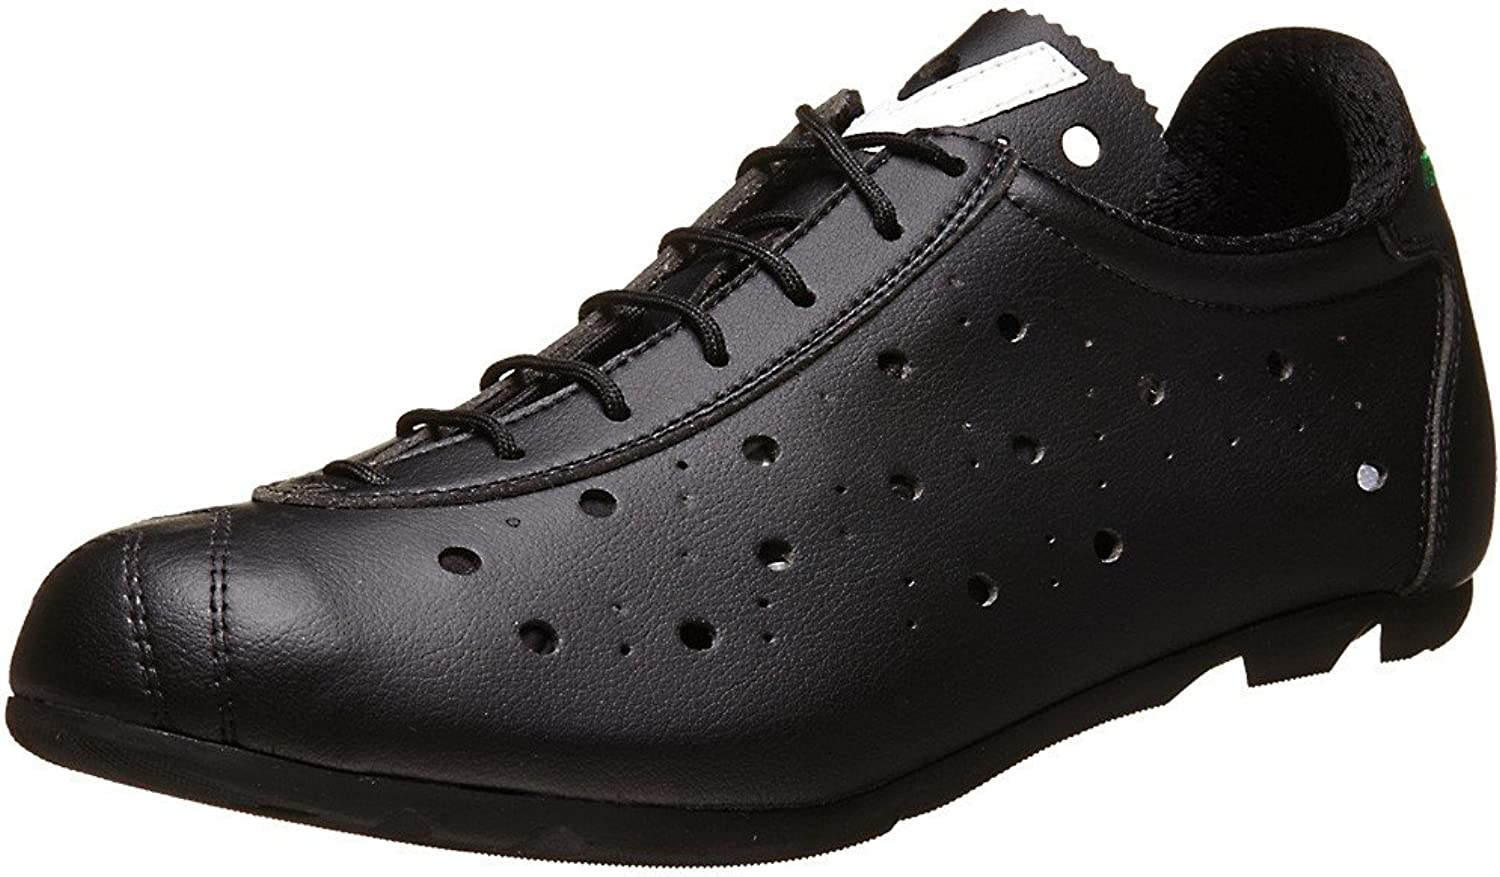 Vittoria 1976 Classic Nylon Cycling shoes (for Look Cleats) Black